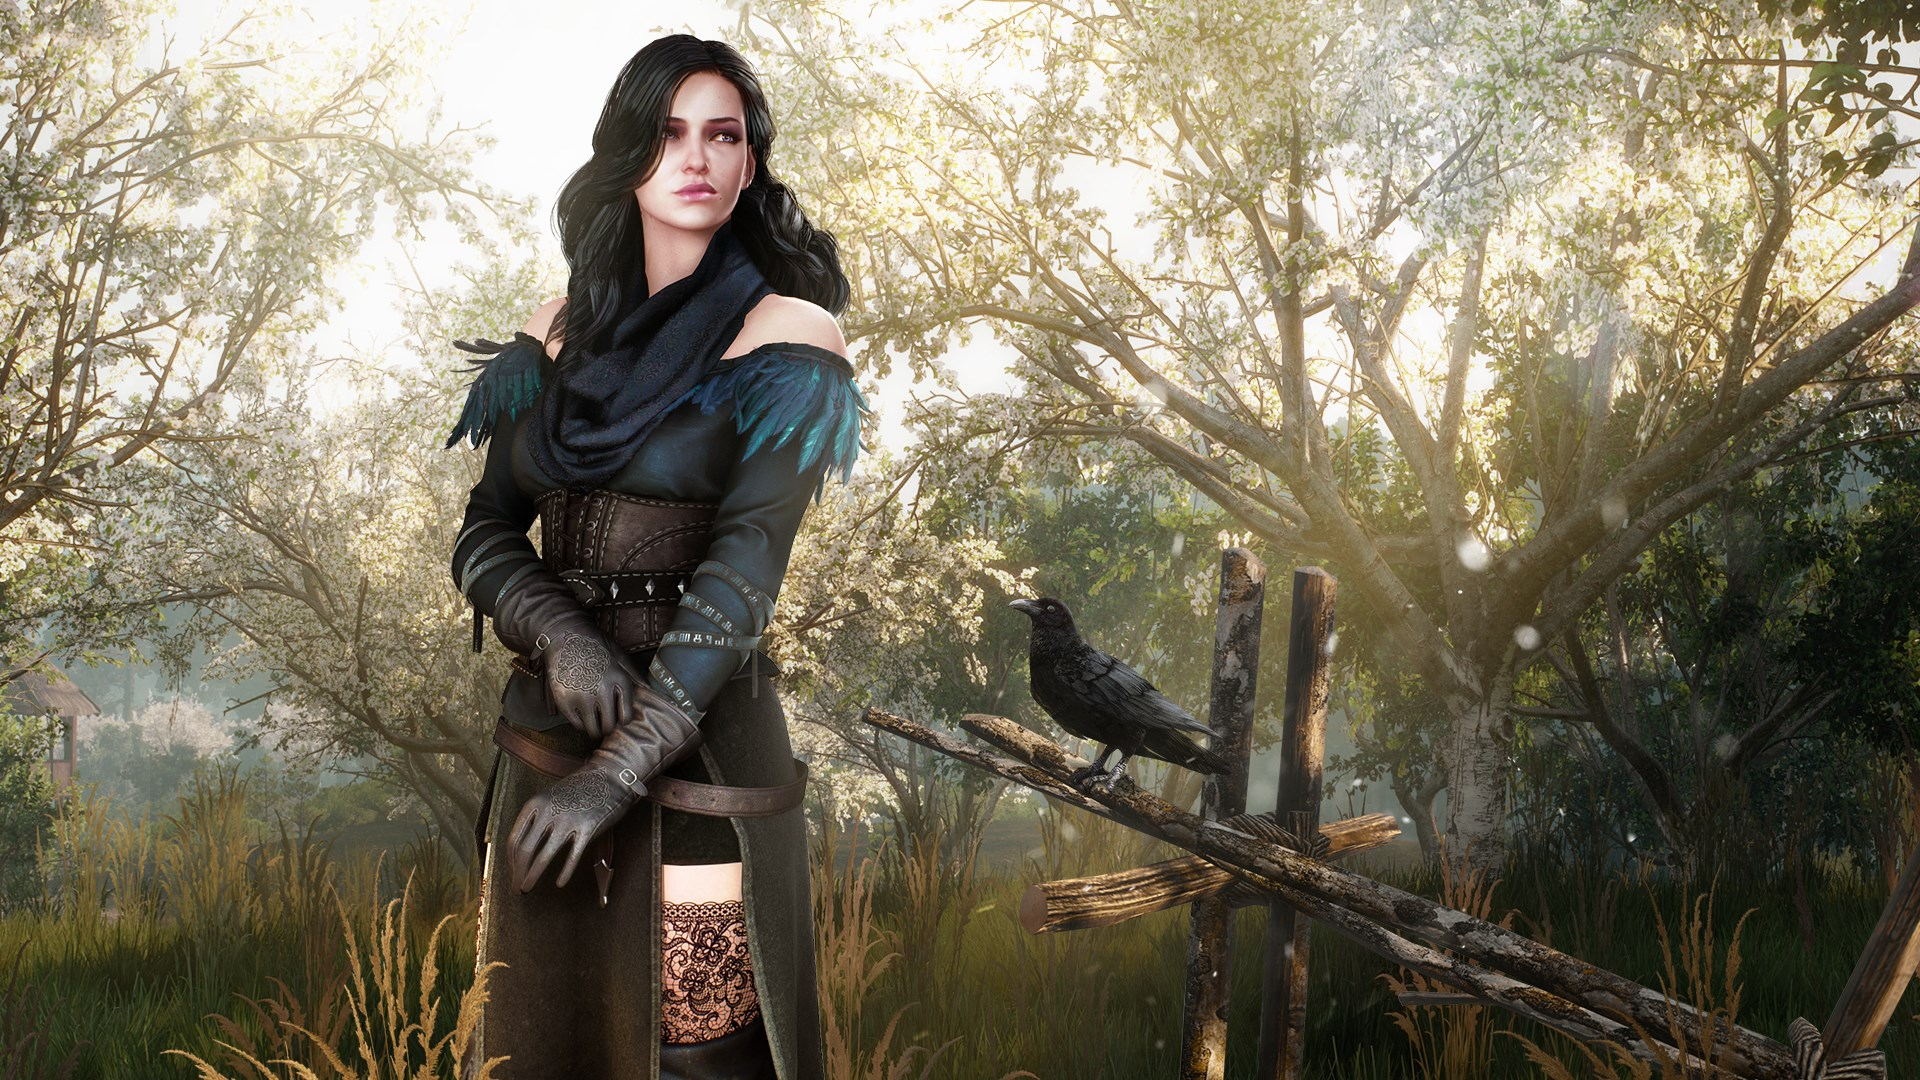 Aparência alternativa para a Yennefer